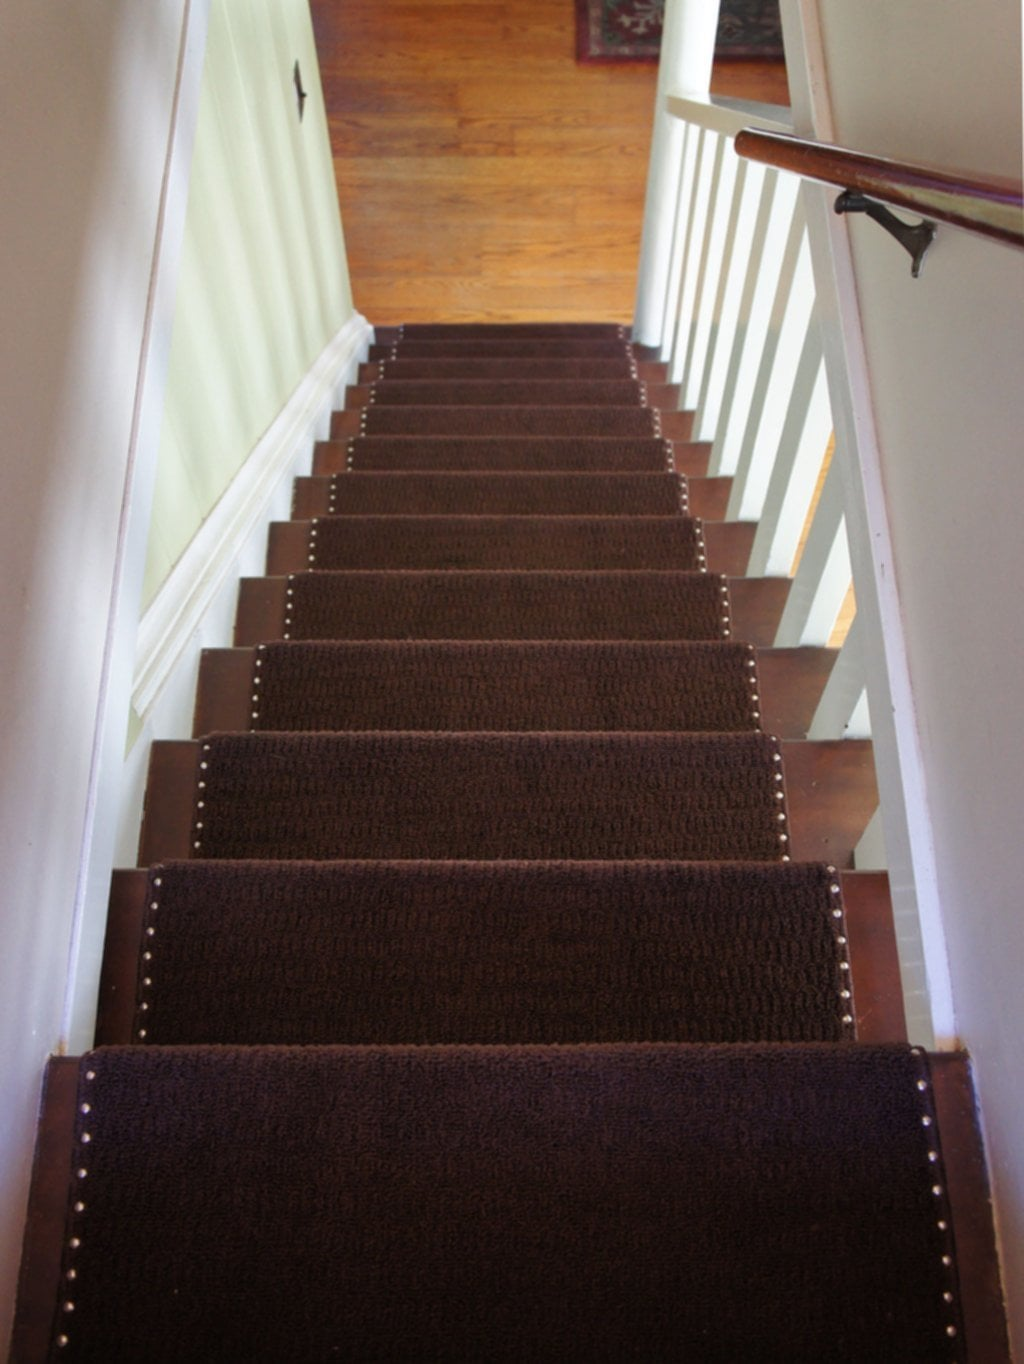 Carpet Runner Stairs Charming Interior Staircase Carpet Runners For Stairs Decorating